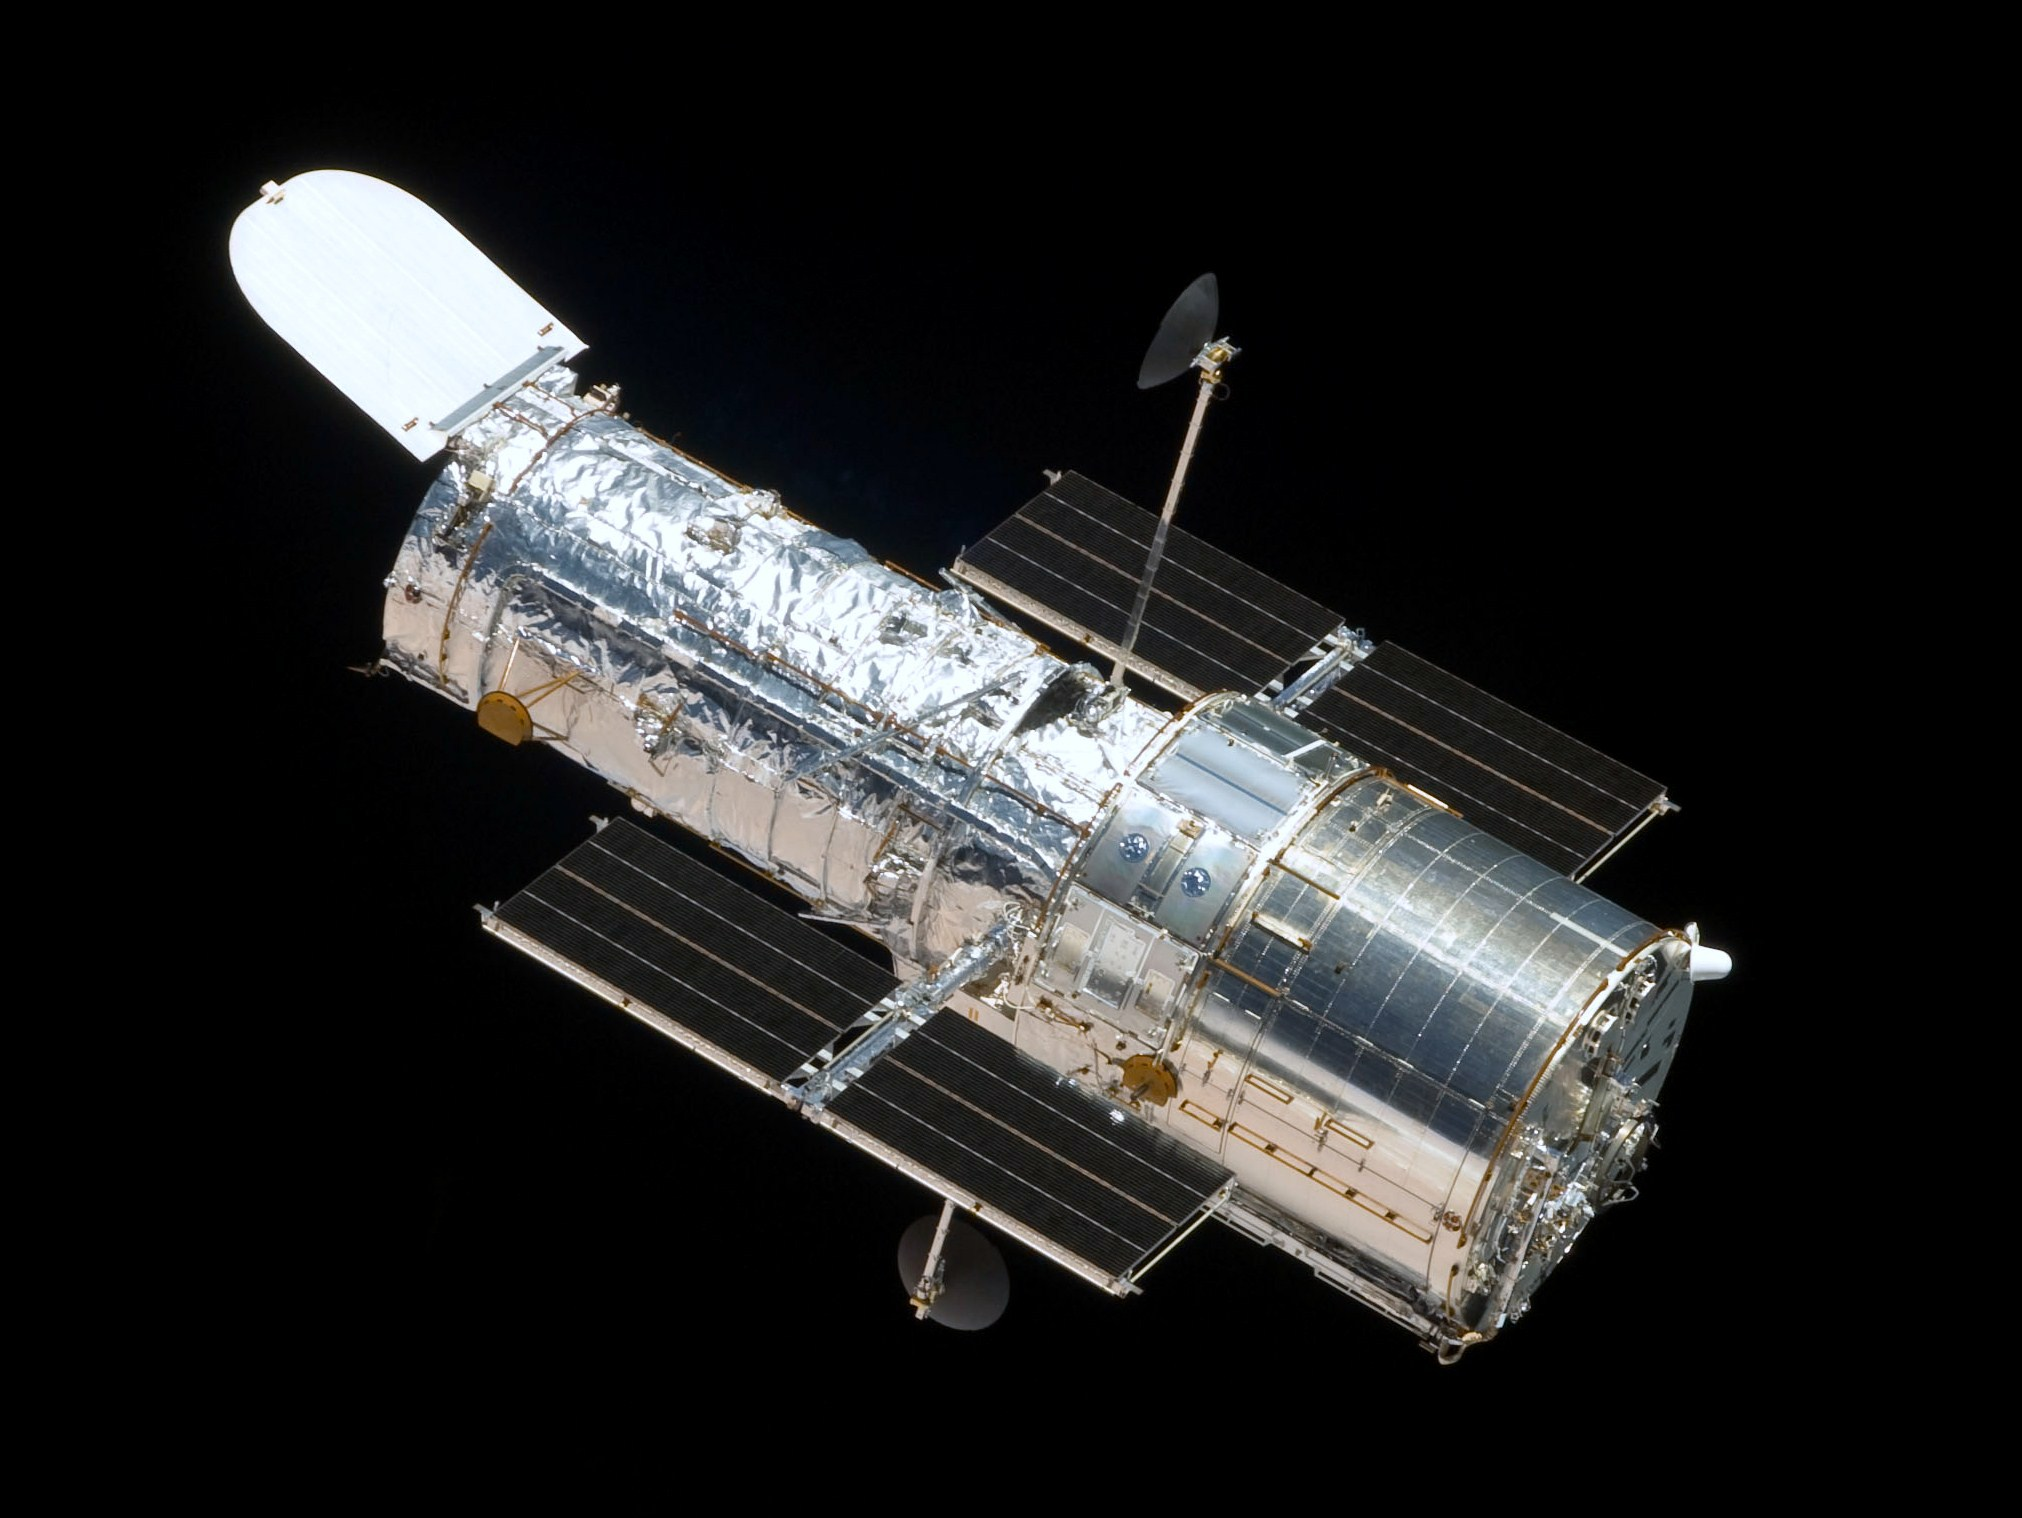 The Hubble Space Telescope, pictured in 2009. Photo: NASA.